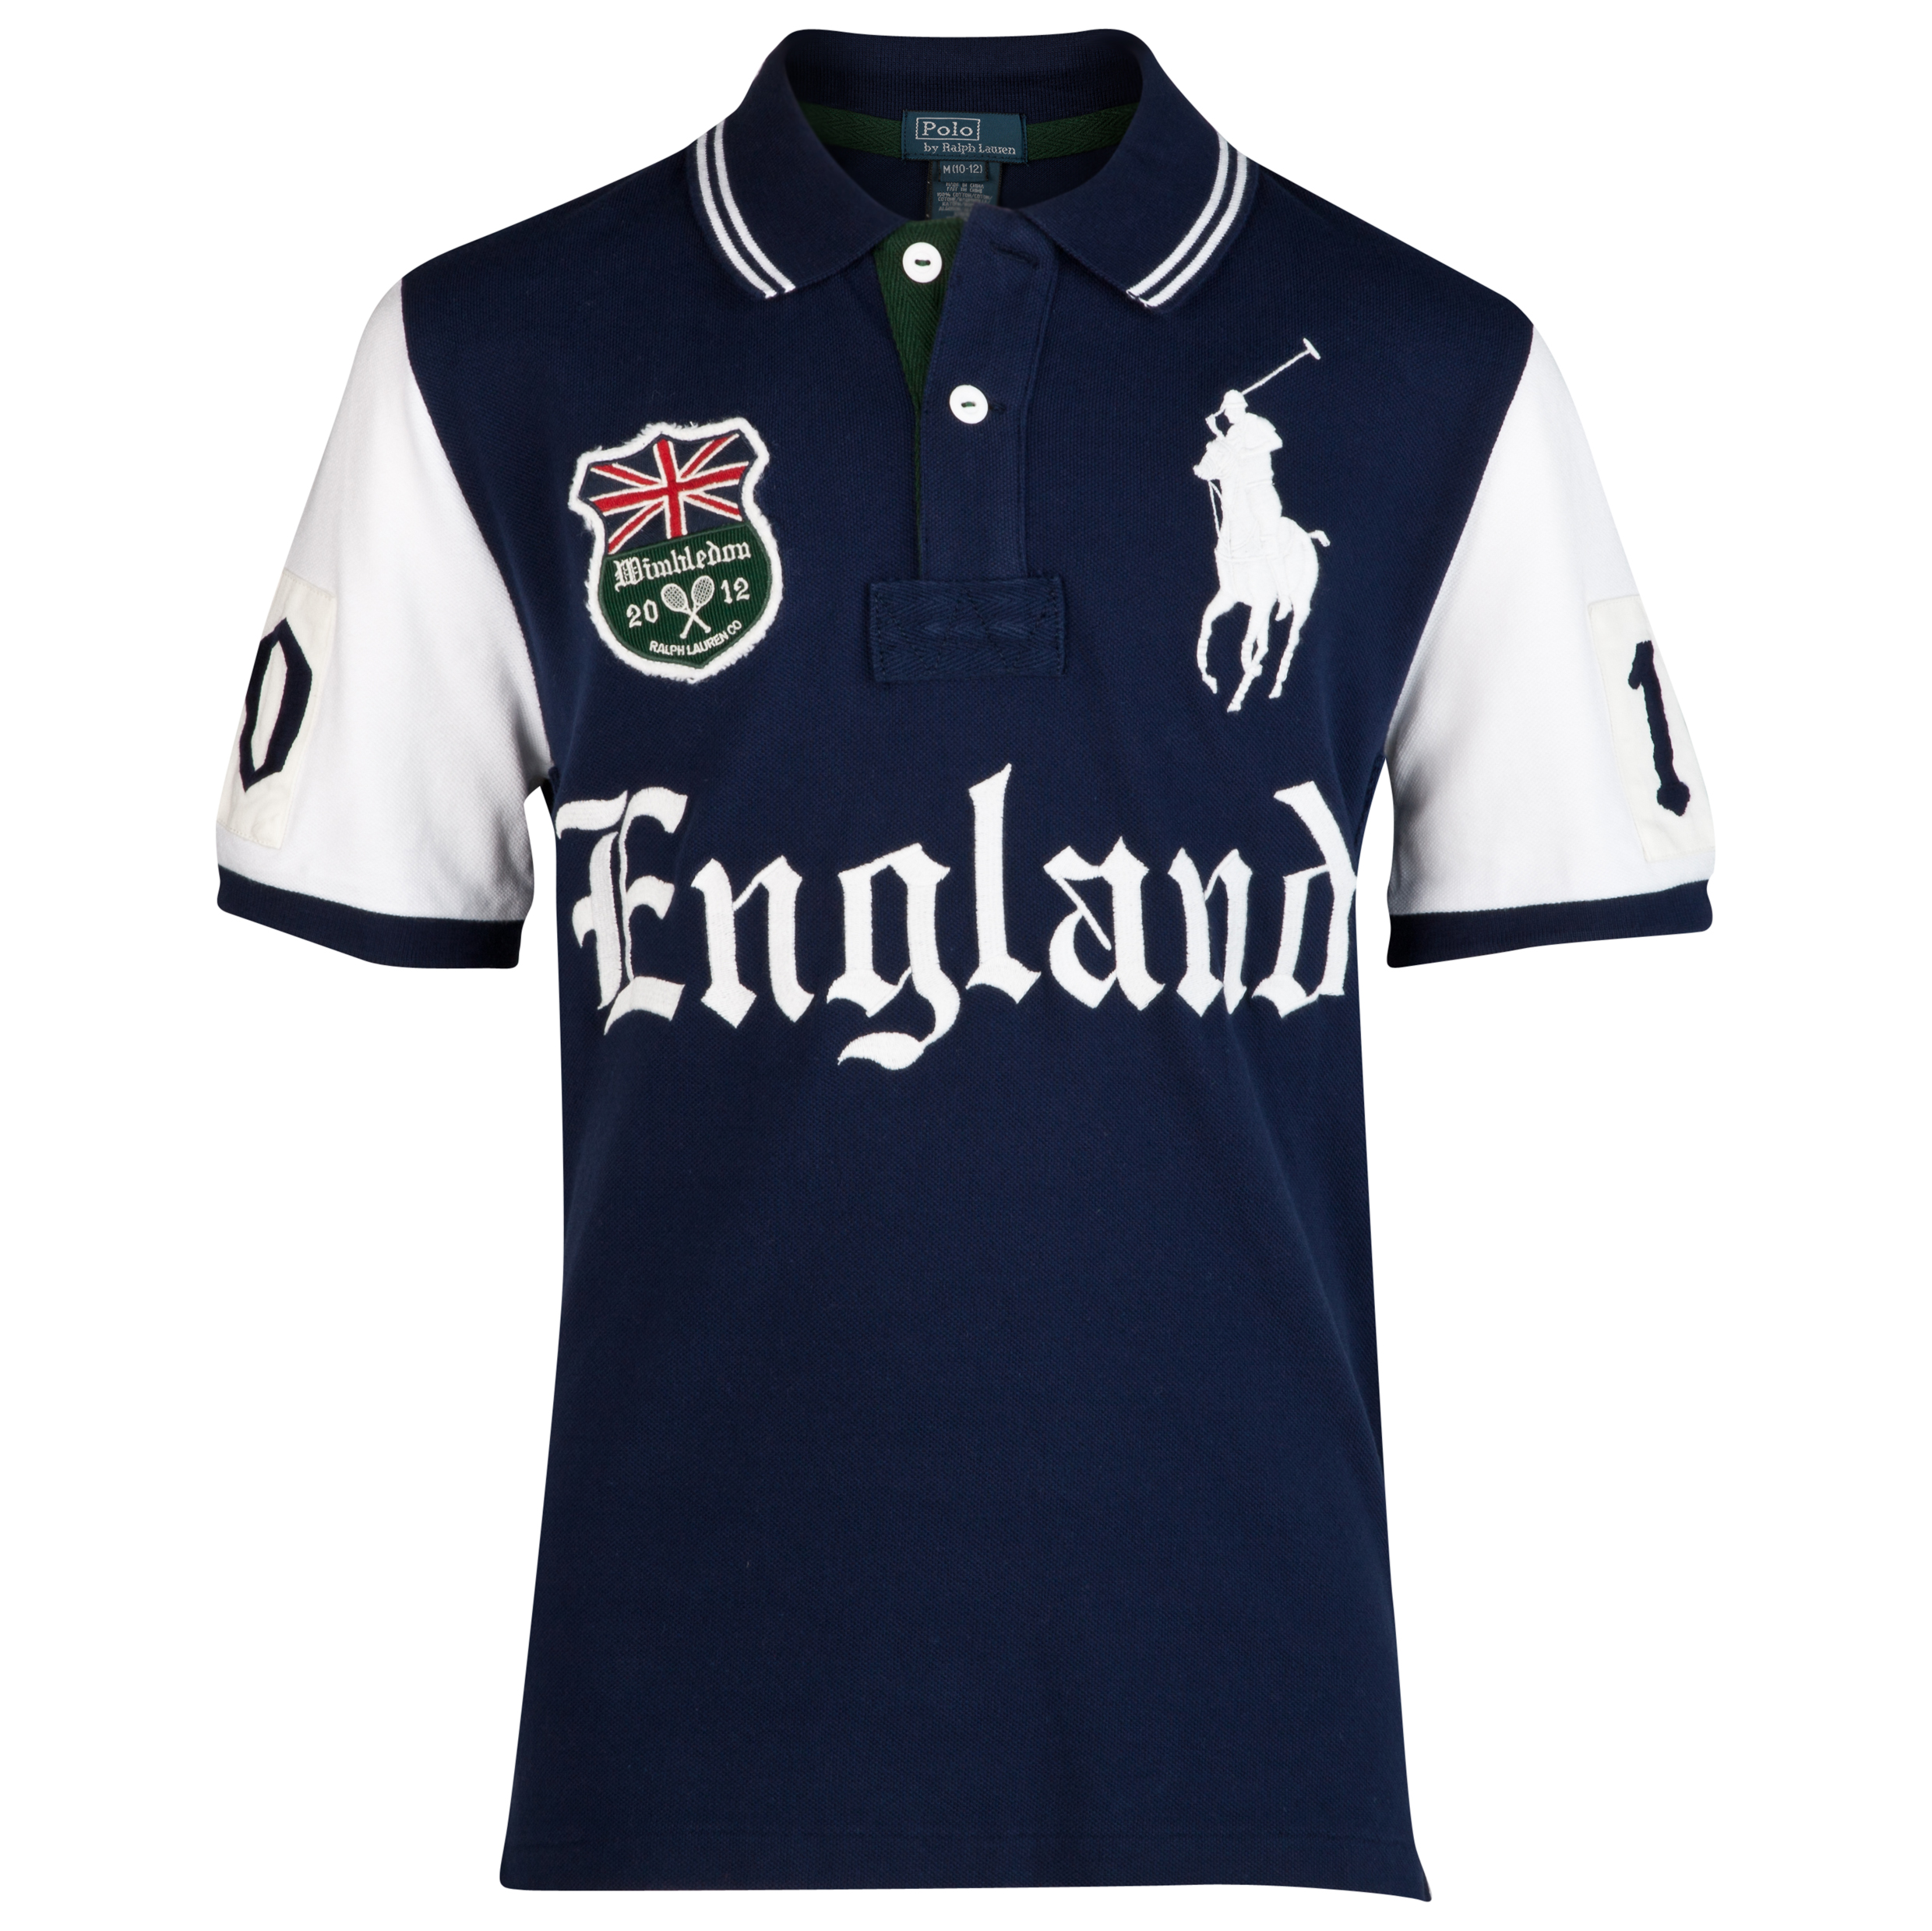 Polo Ralph Lauren Wimbledon England Pieced Mesh Polo - French Navy - Infant Boys